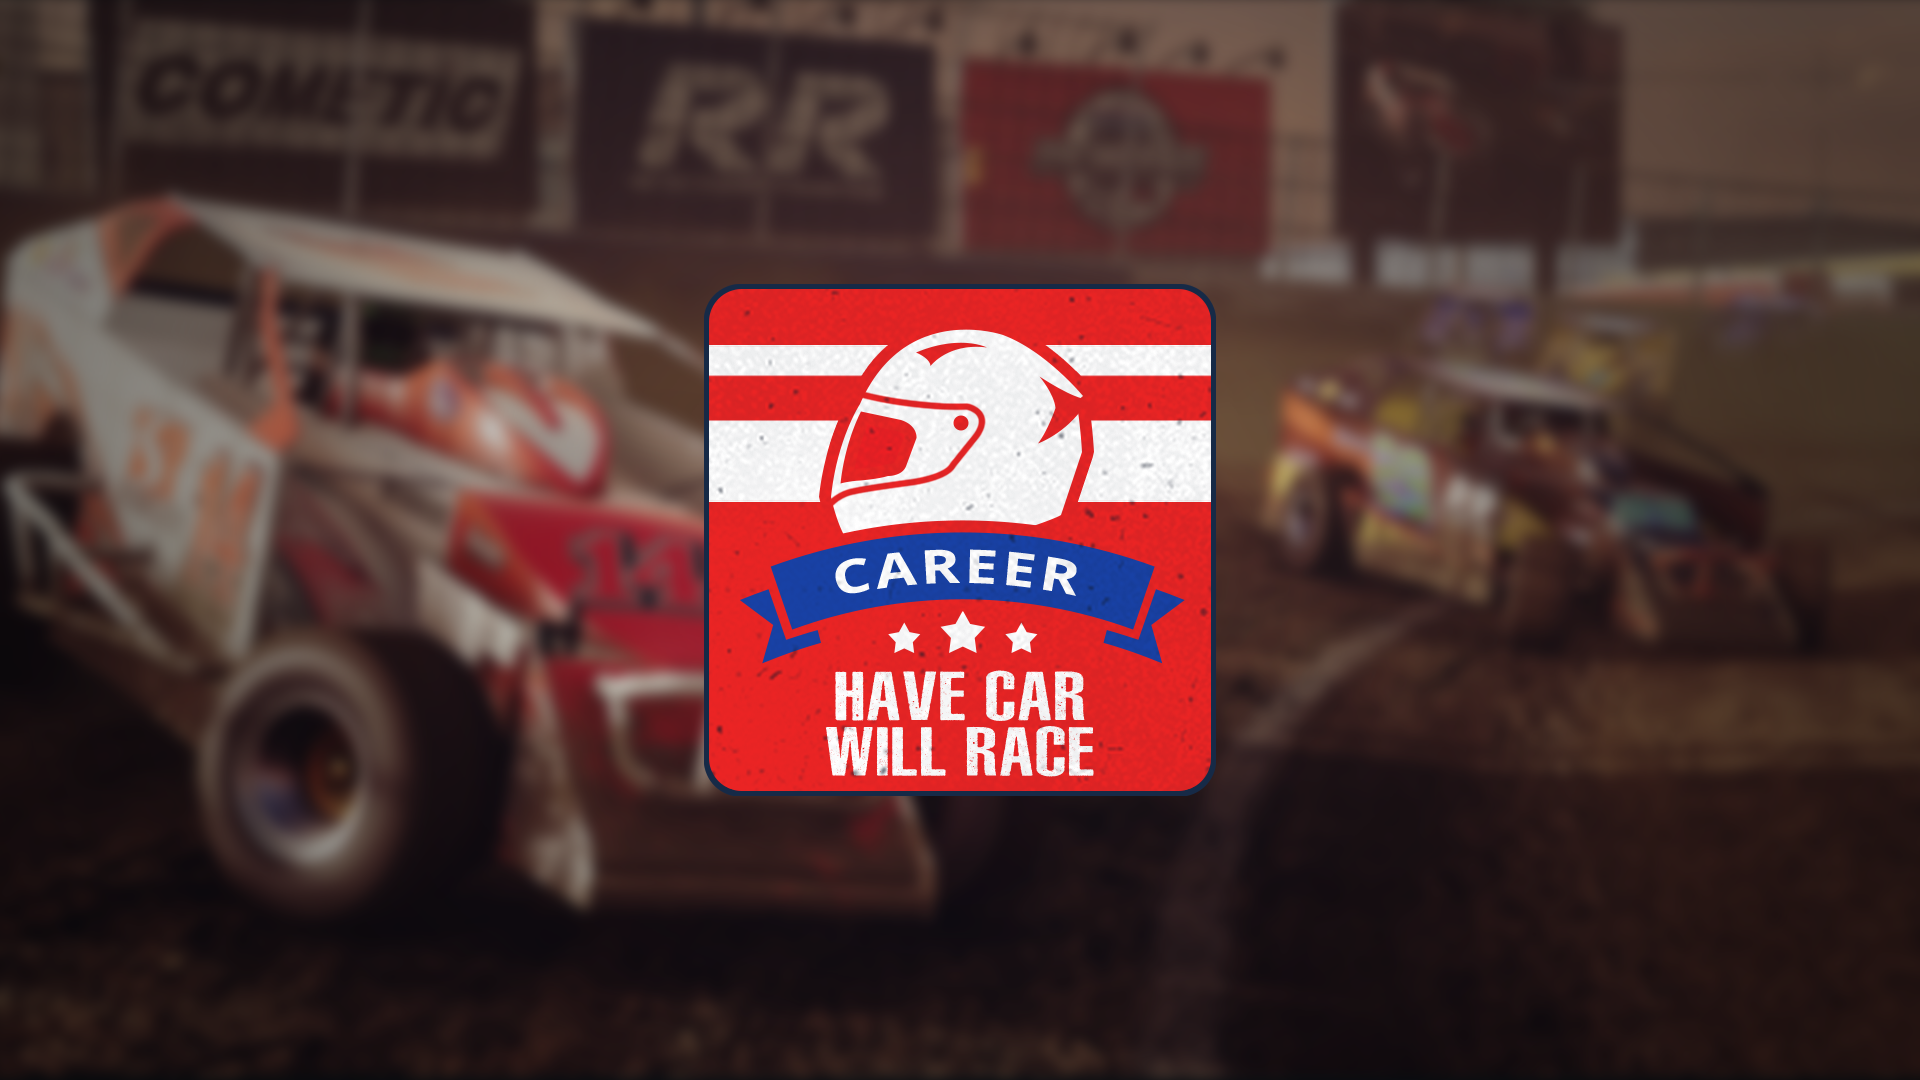 Have Car, Will Race